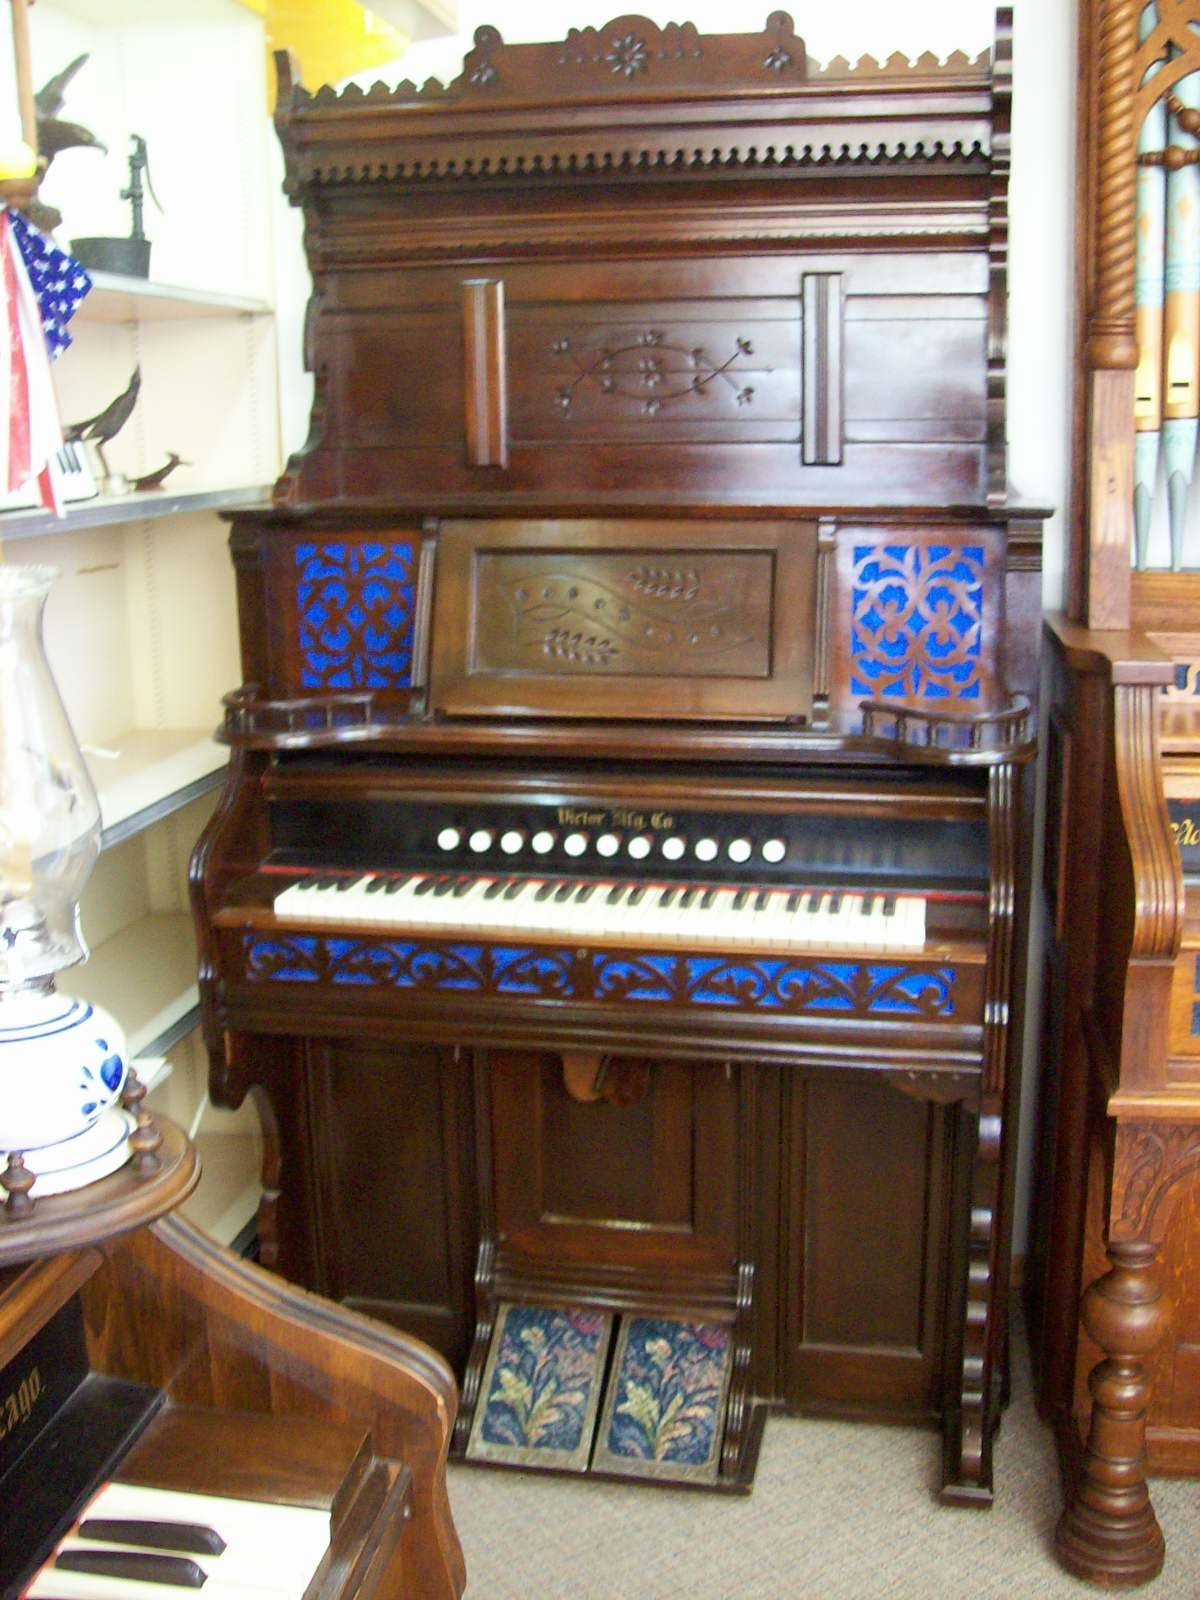 1903 Victoria Organ Co. I.D. No. #76